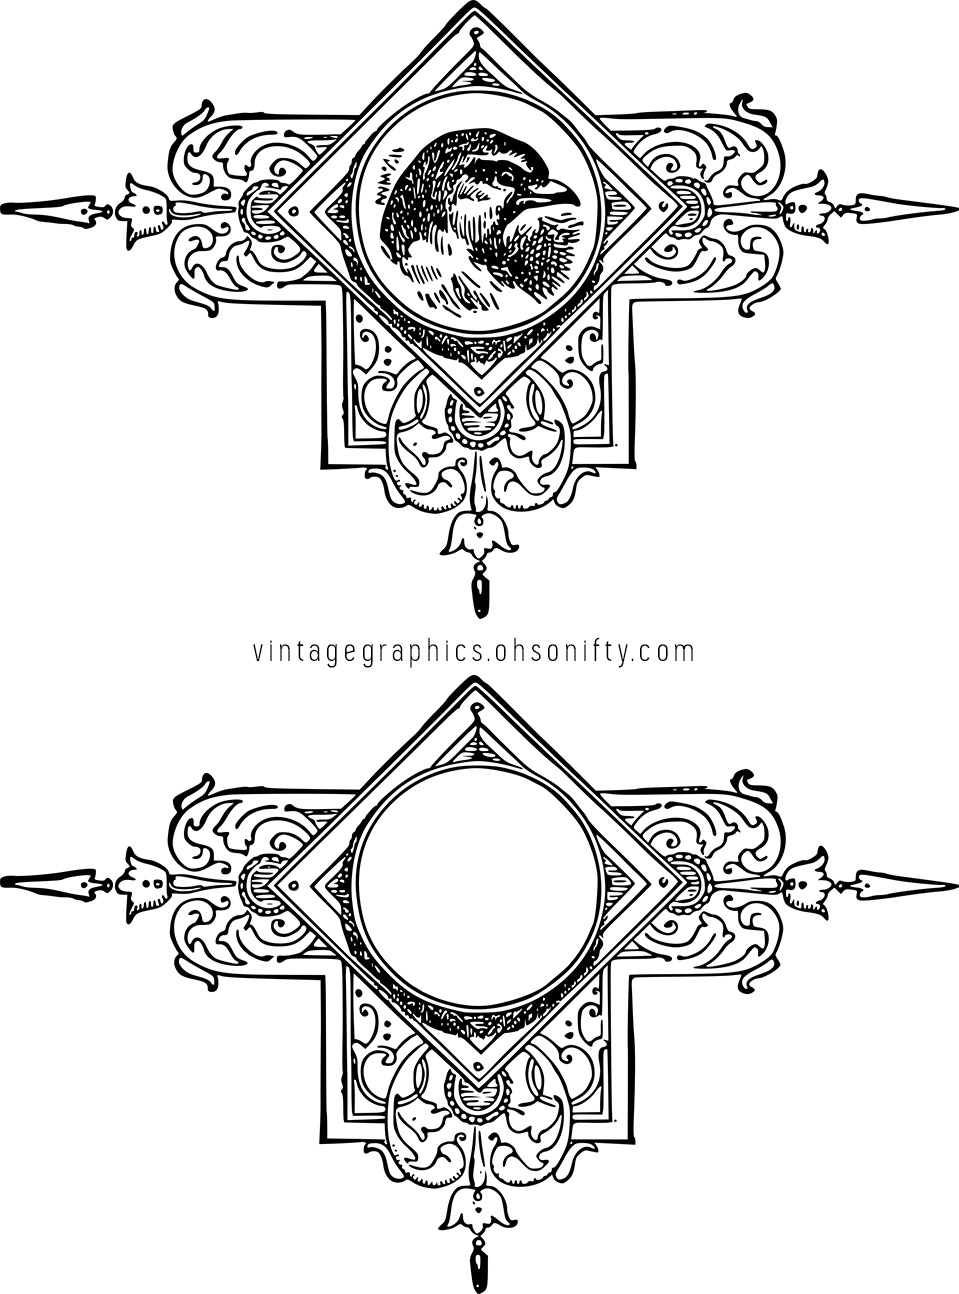 Vintage Decorative Bird Ornament Stock Vector & Clip Art